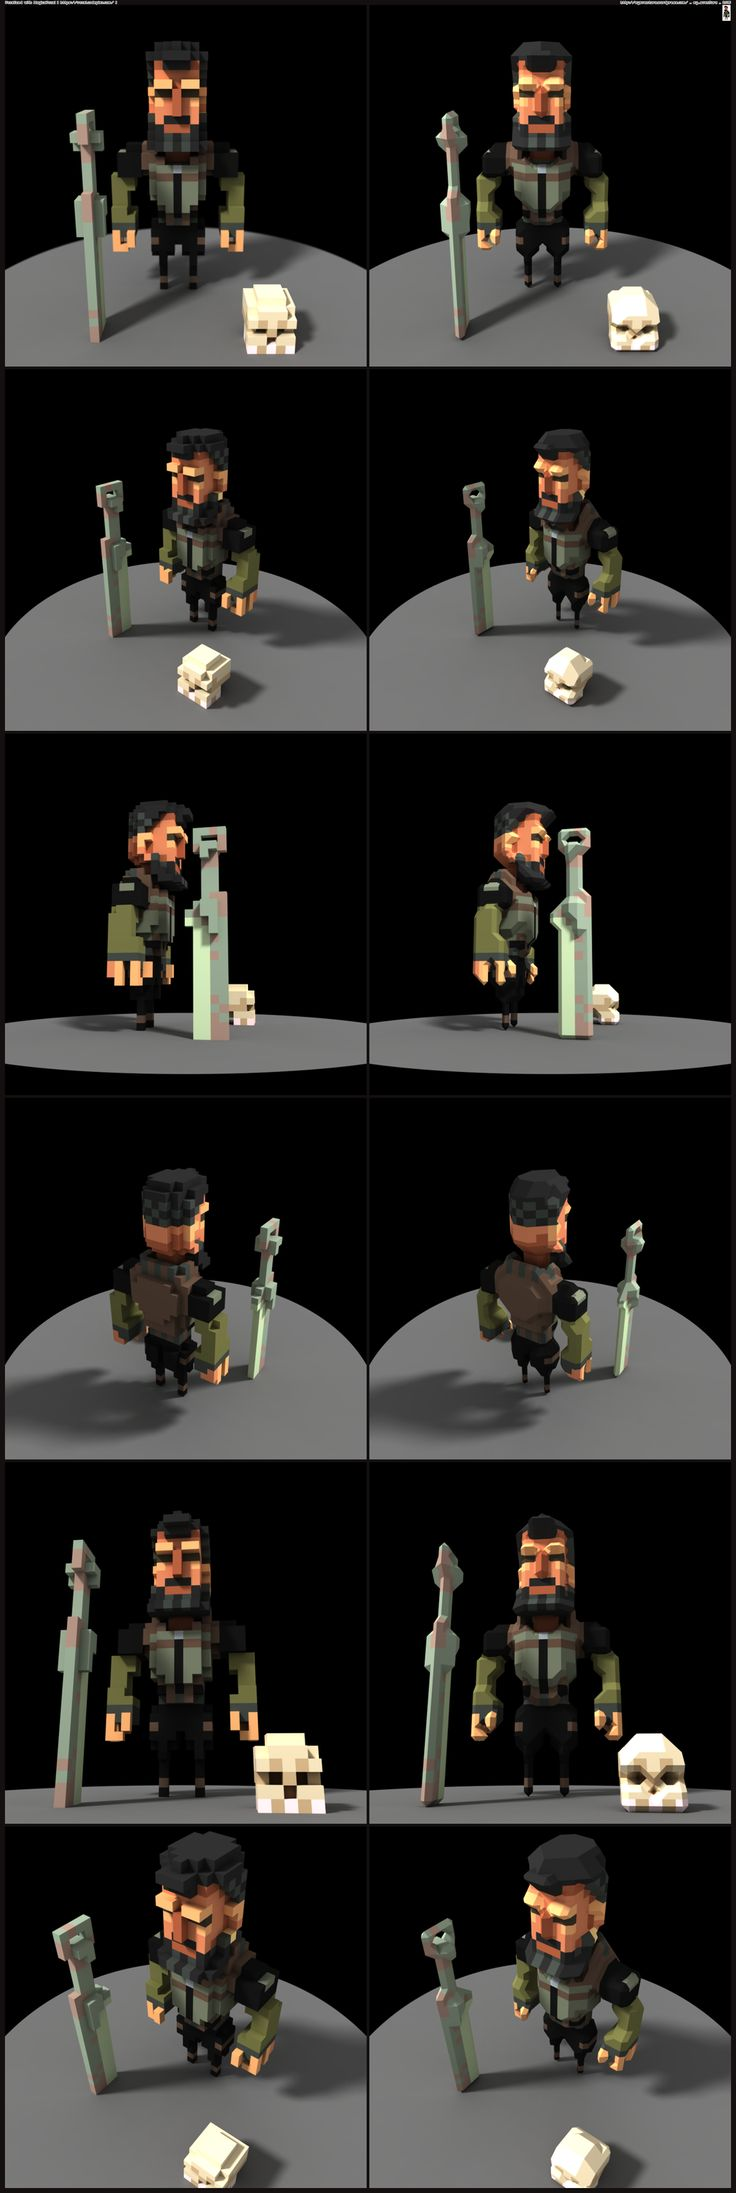 Dude Voxel by Dillerkind                                                                                                                                                     More                                                                                                                                                                                 More